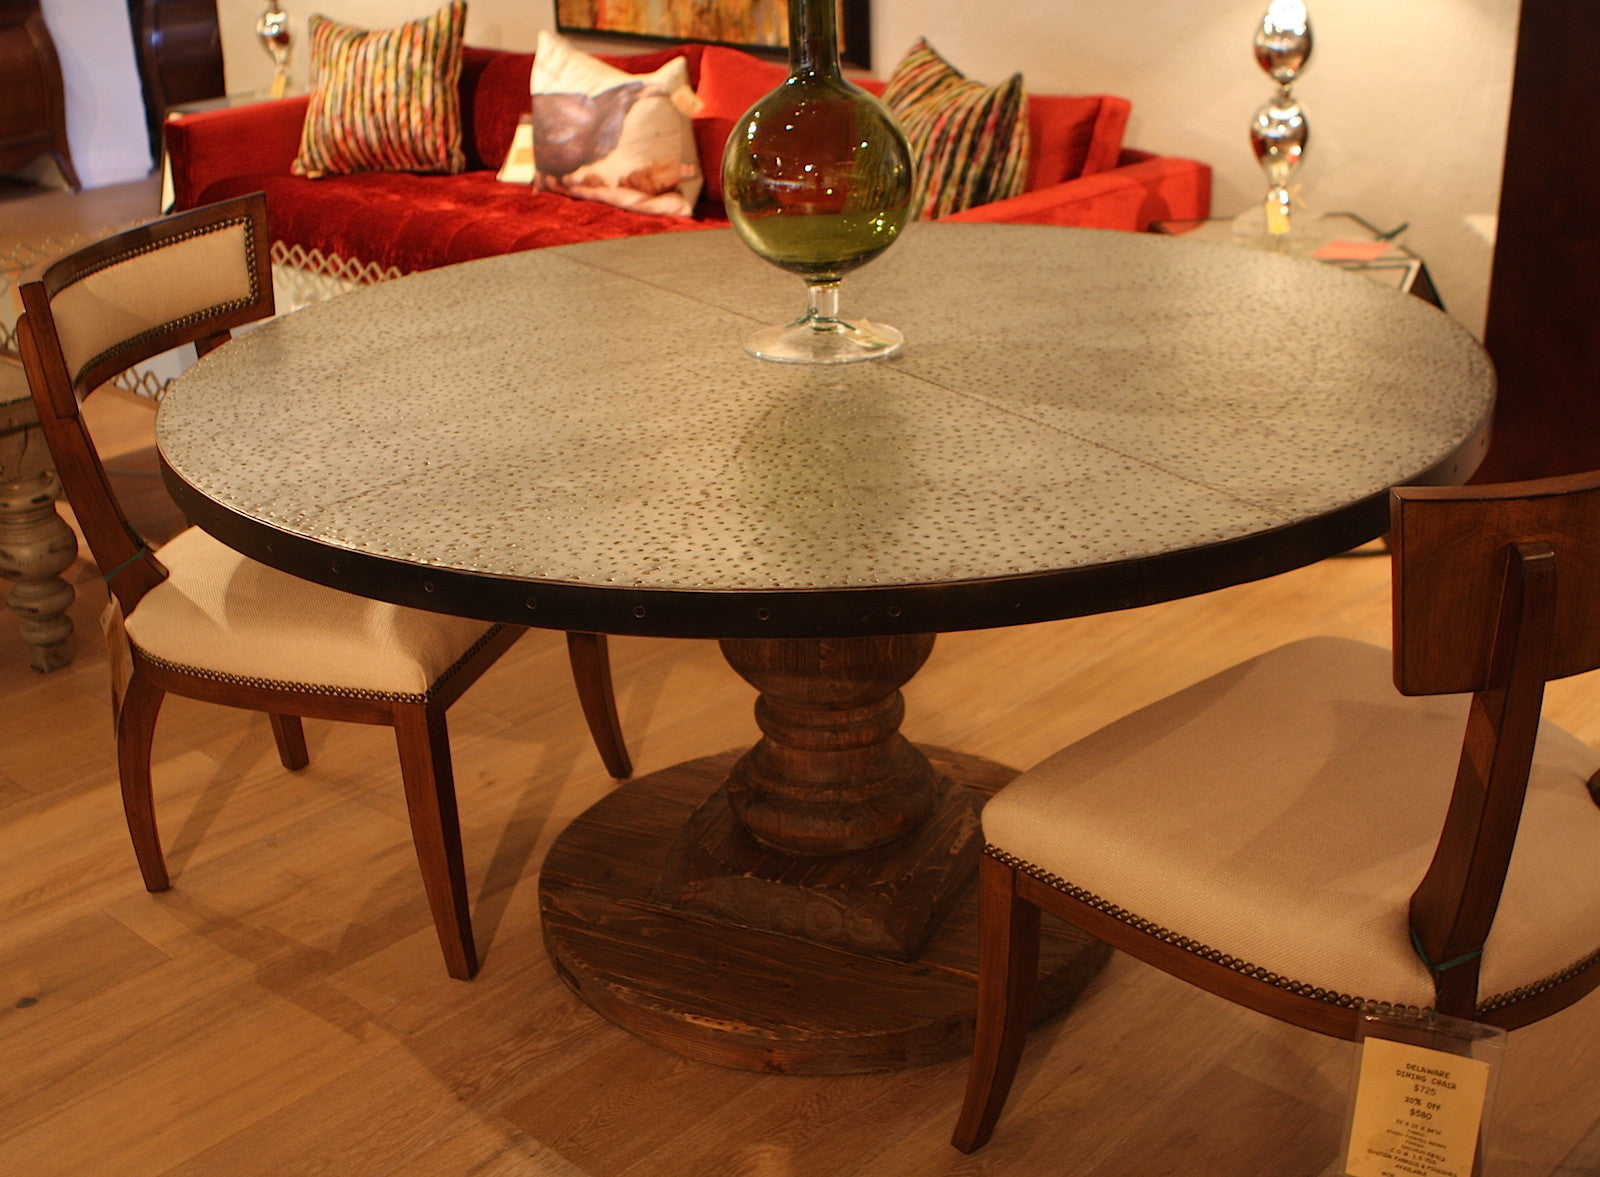 Zinc Dining Table. Elegant Zinc Table Etsy With Zinc Dining Table ...